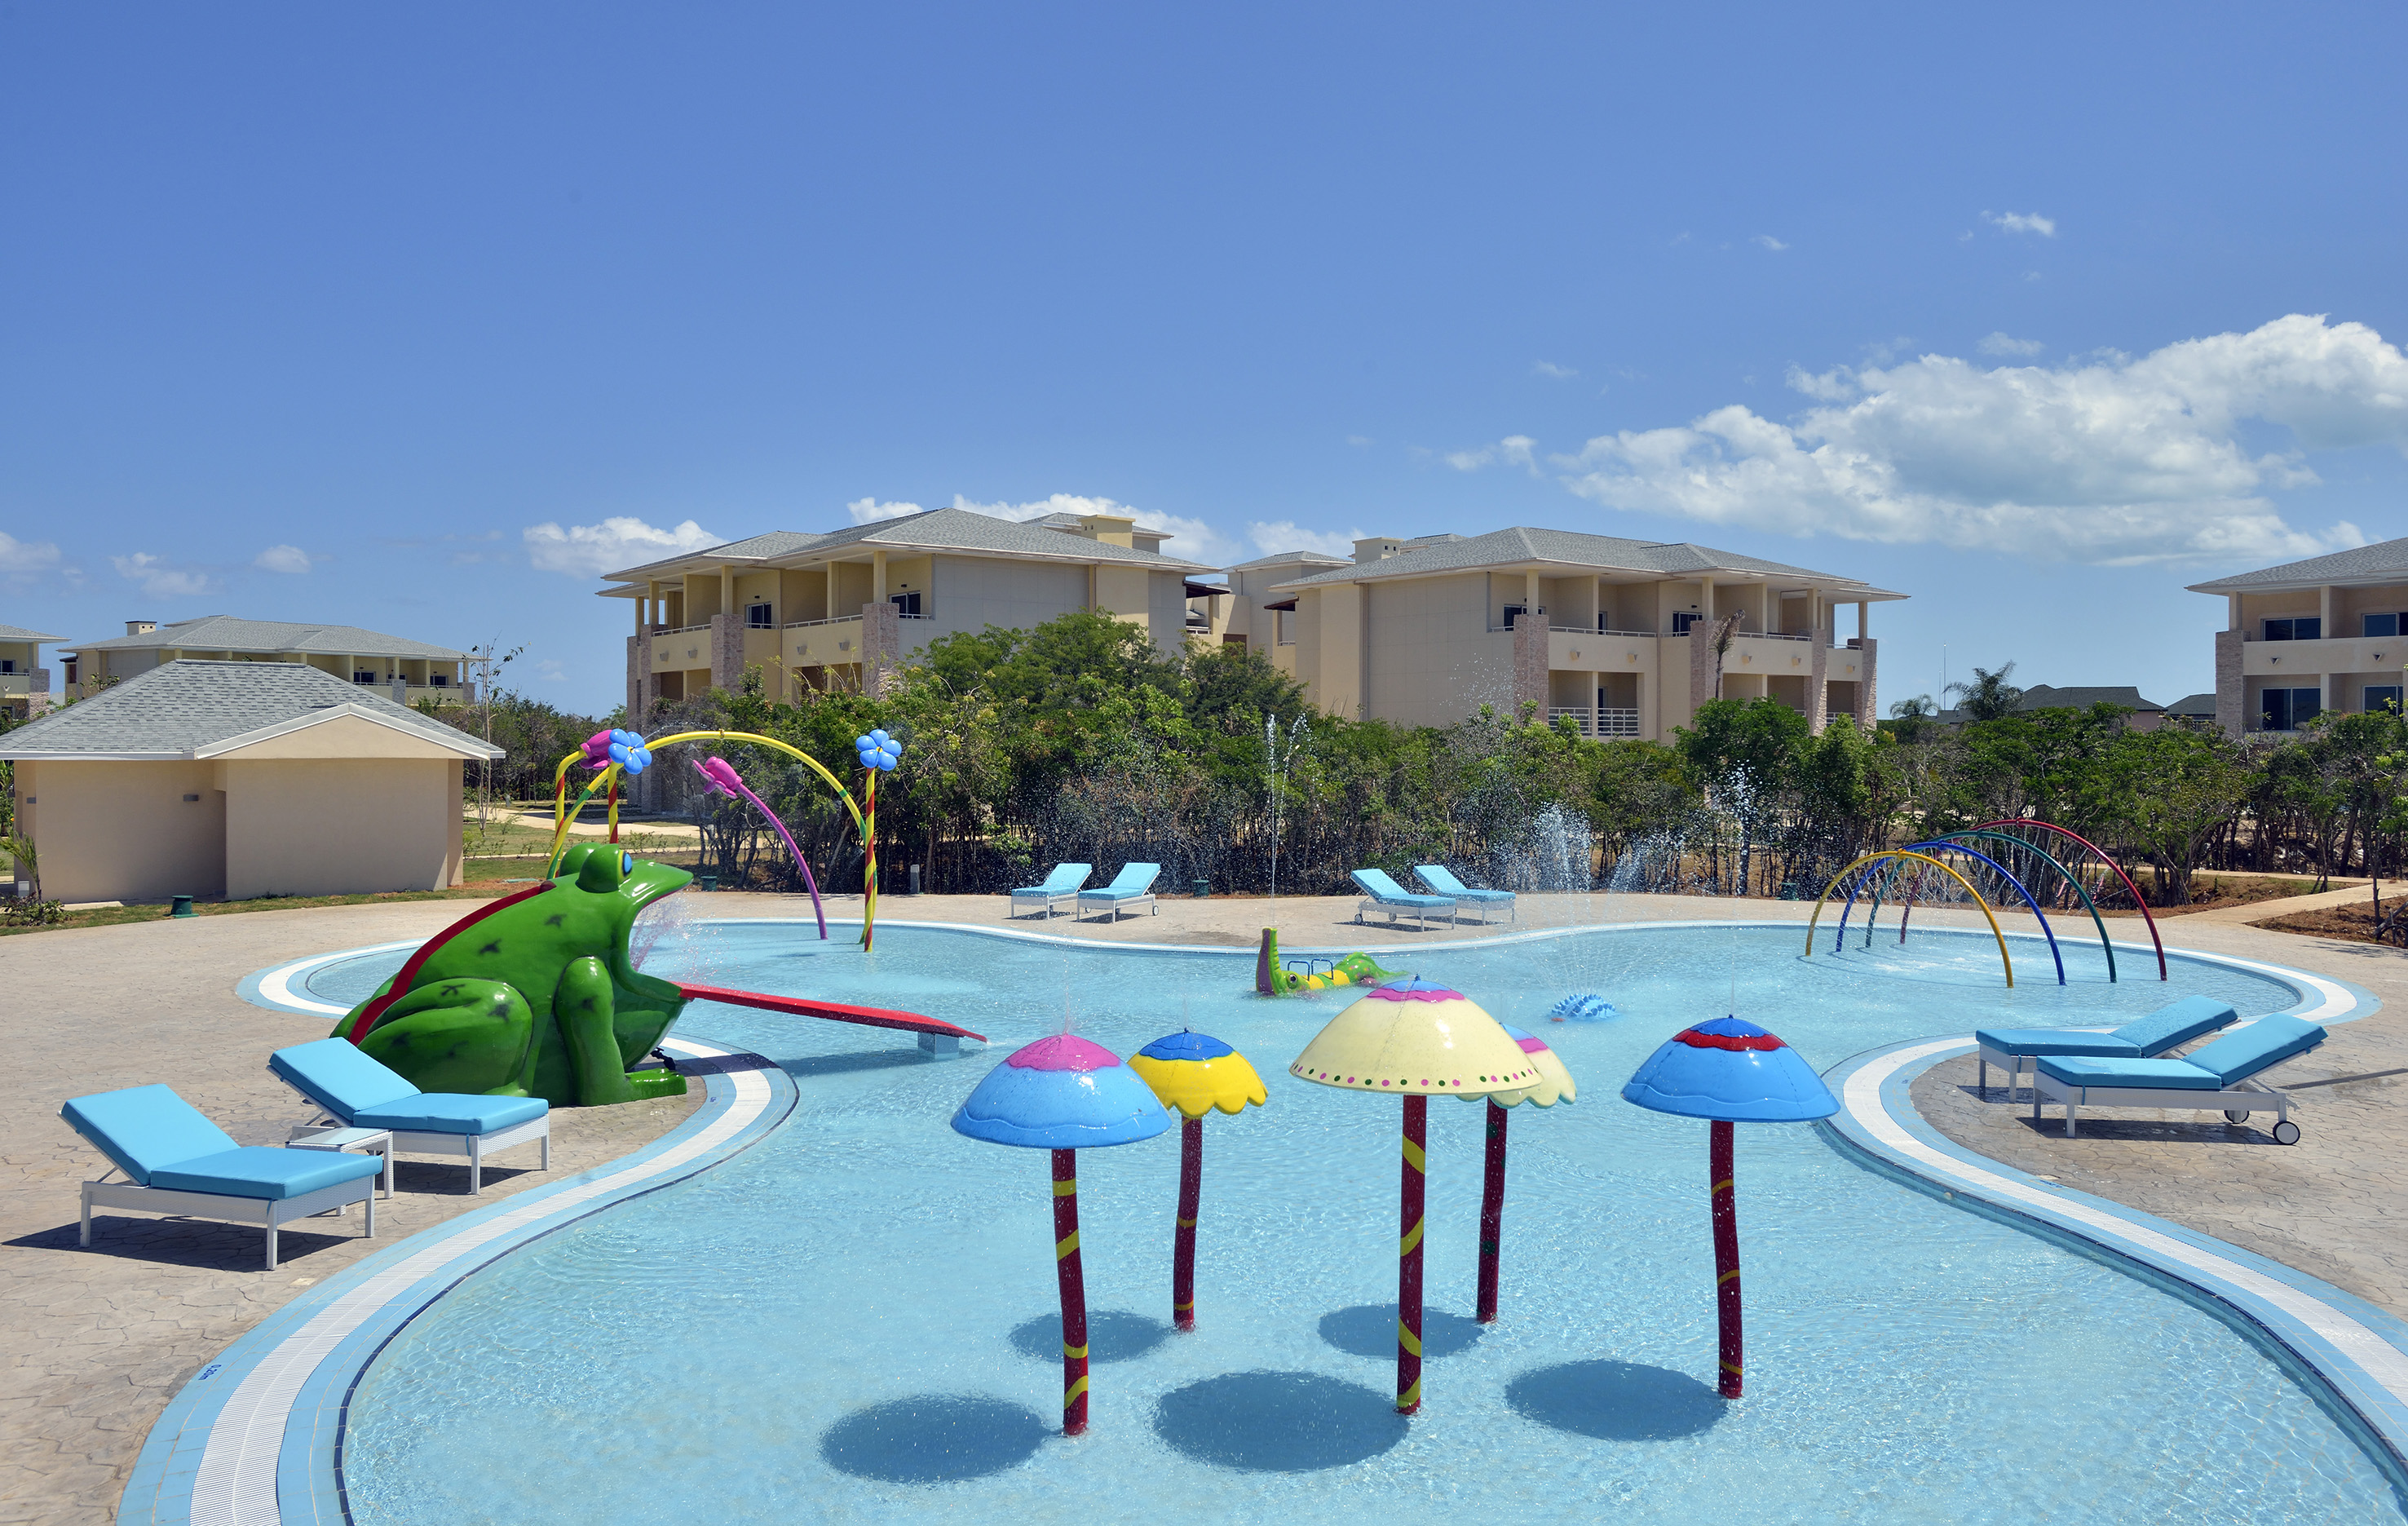 12 Ans Paradisus Varadero Resort And Spa, L'espace Family